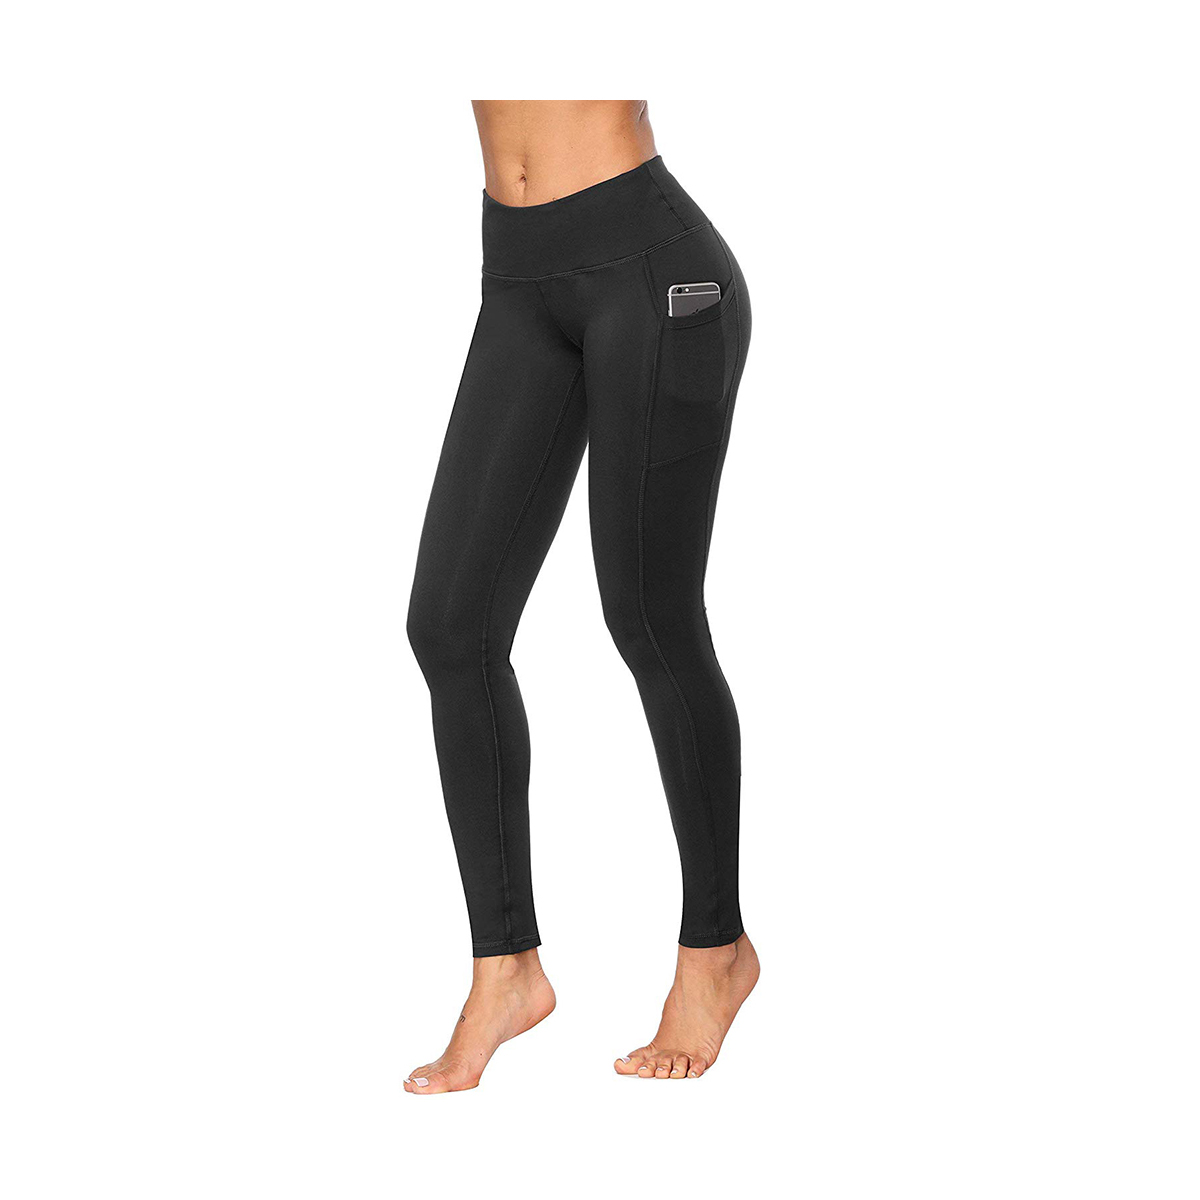 b300d60a4f379 11 Top-Rated Black Leggings That Are So Comfortable, You'll Never ...